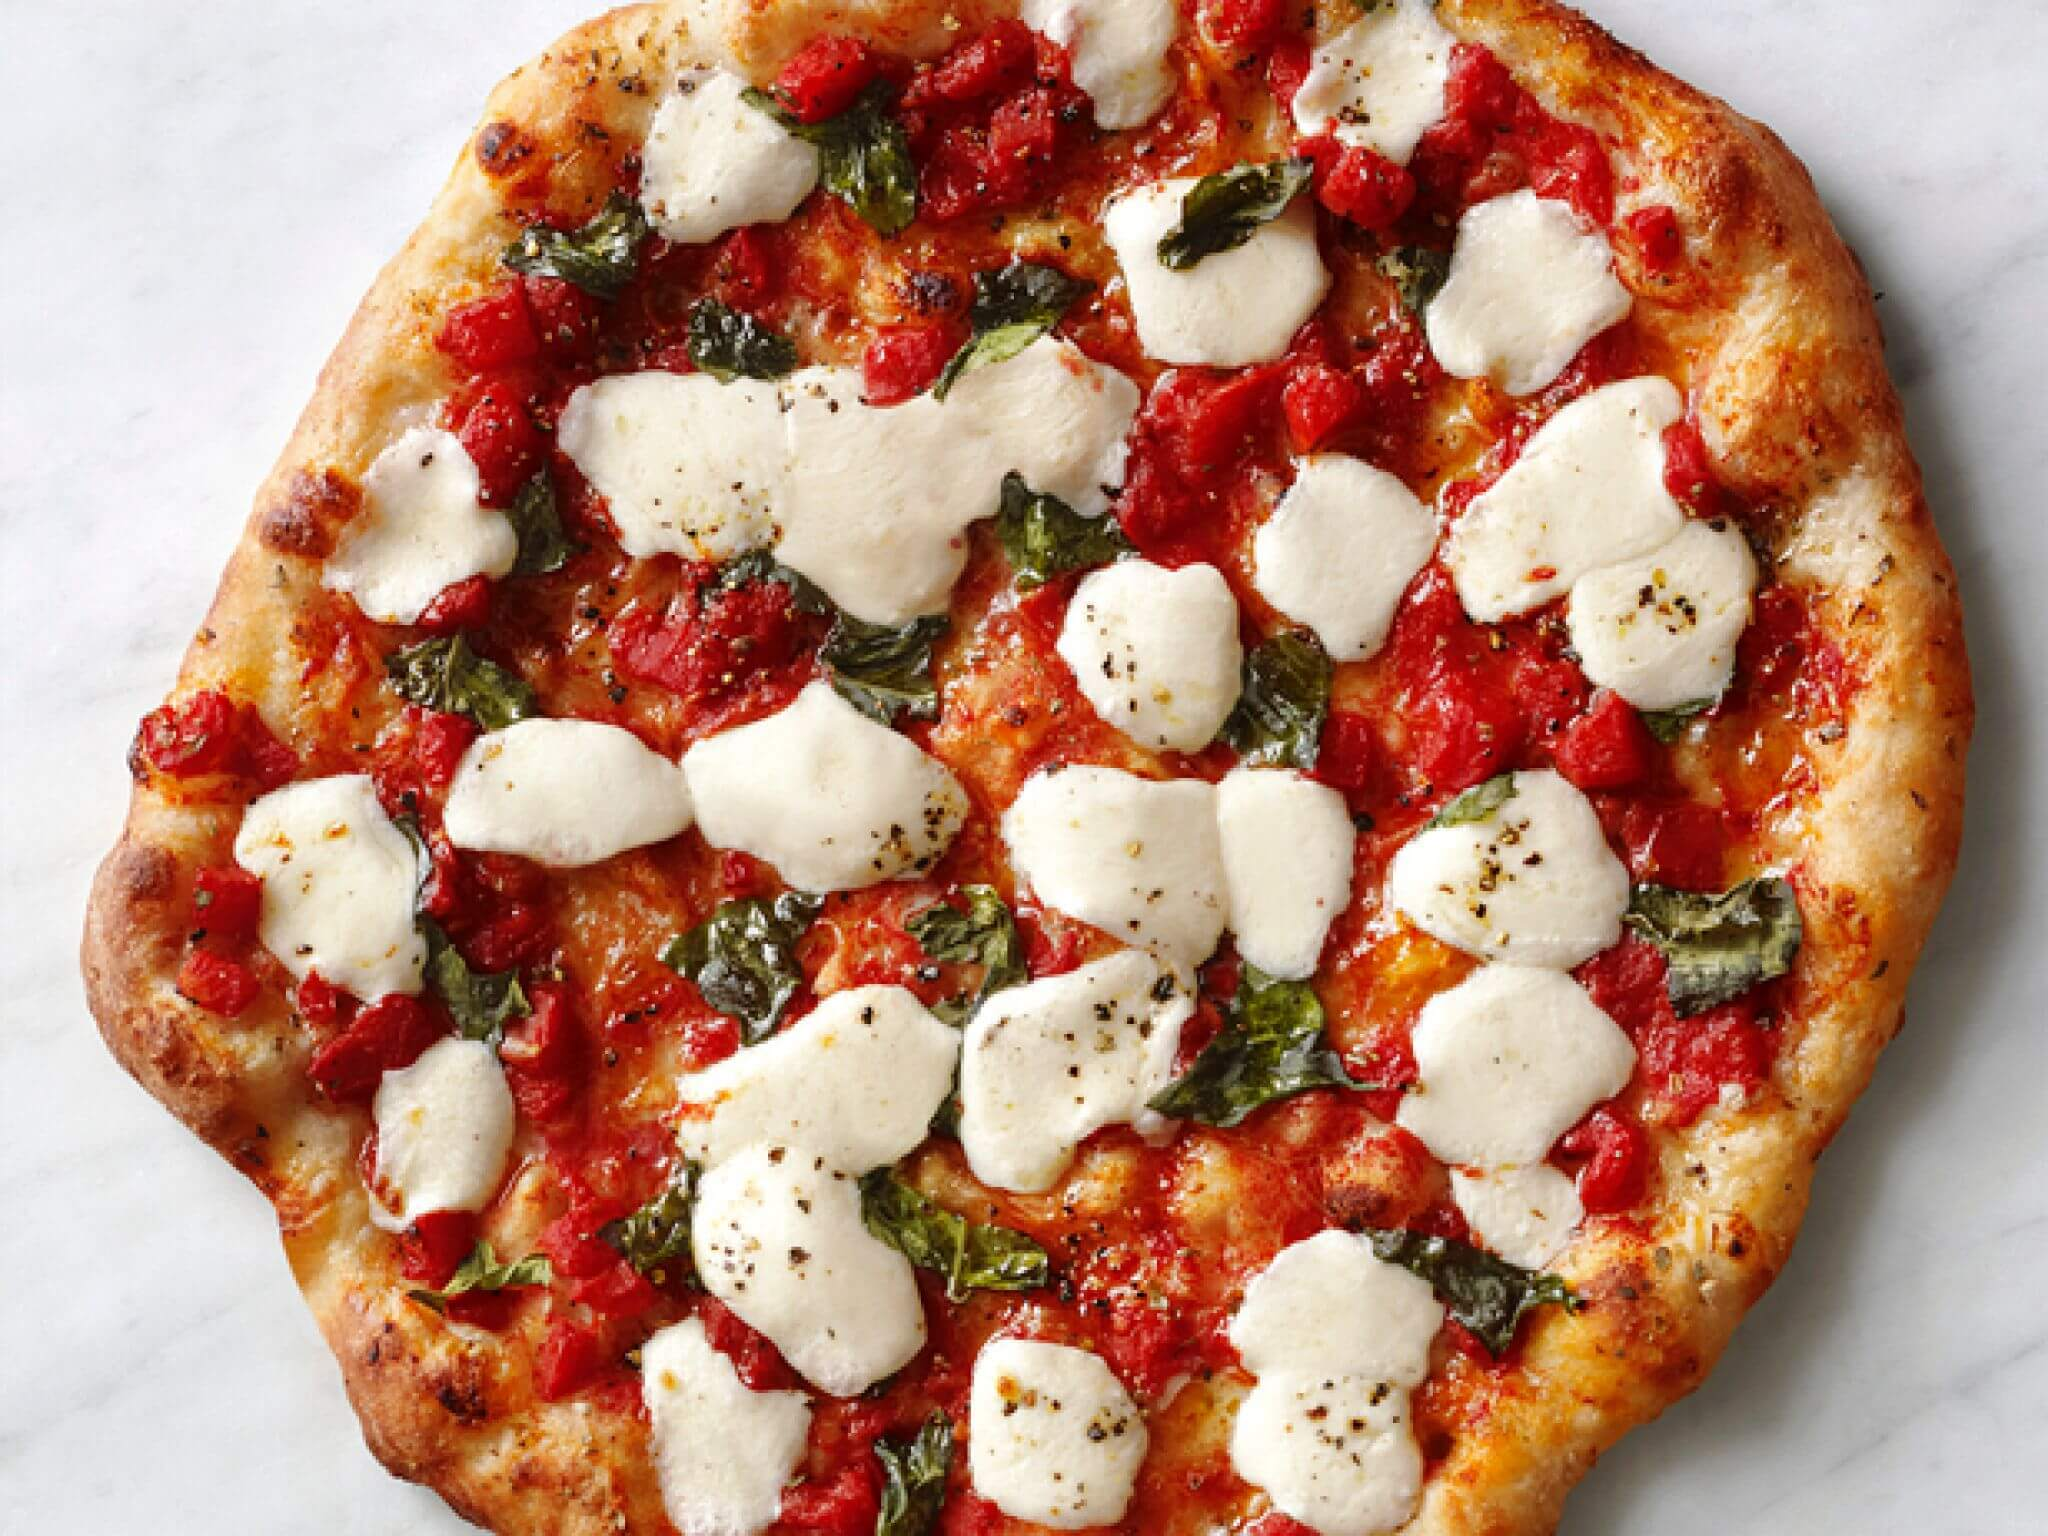 DIY custom pizza toppings you can go crazy with